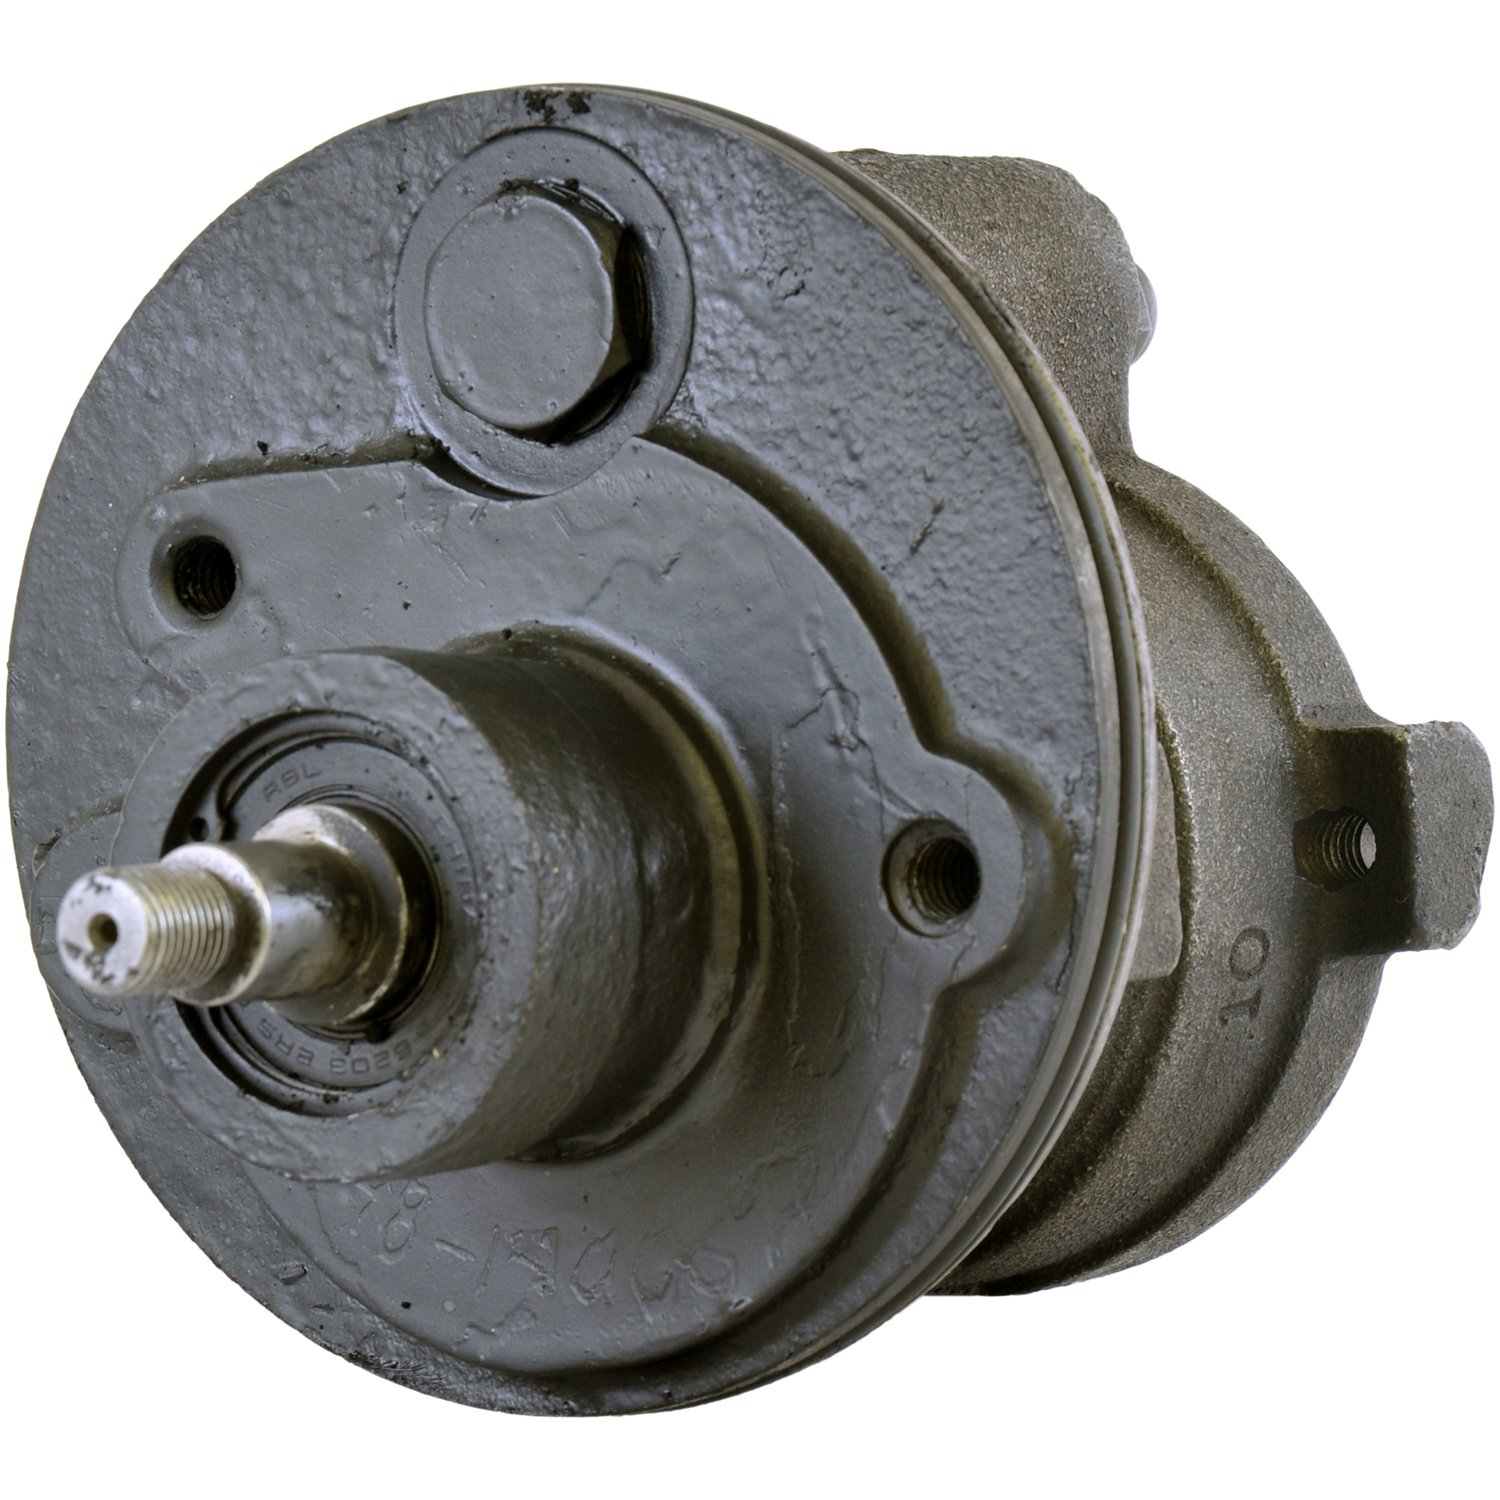 ACDelco 36P0283 Professional Power Steering Pump Remanufactured